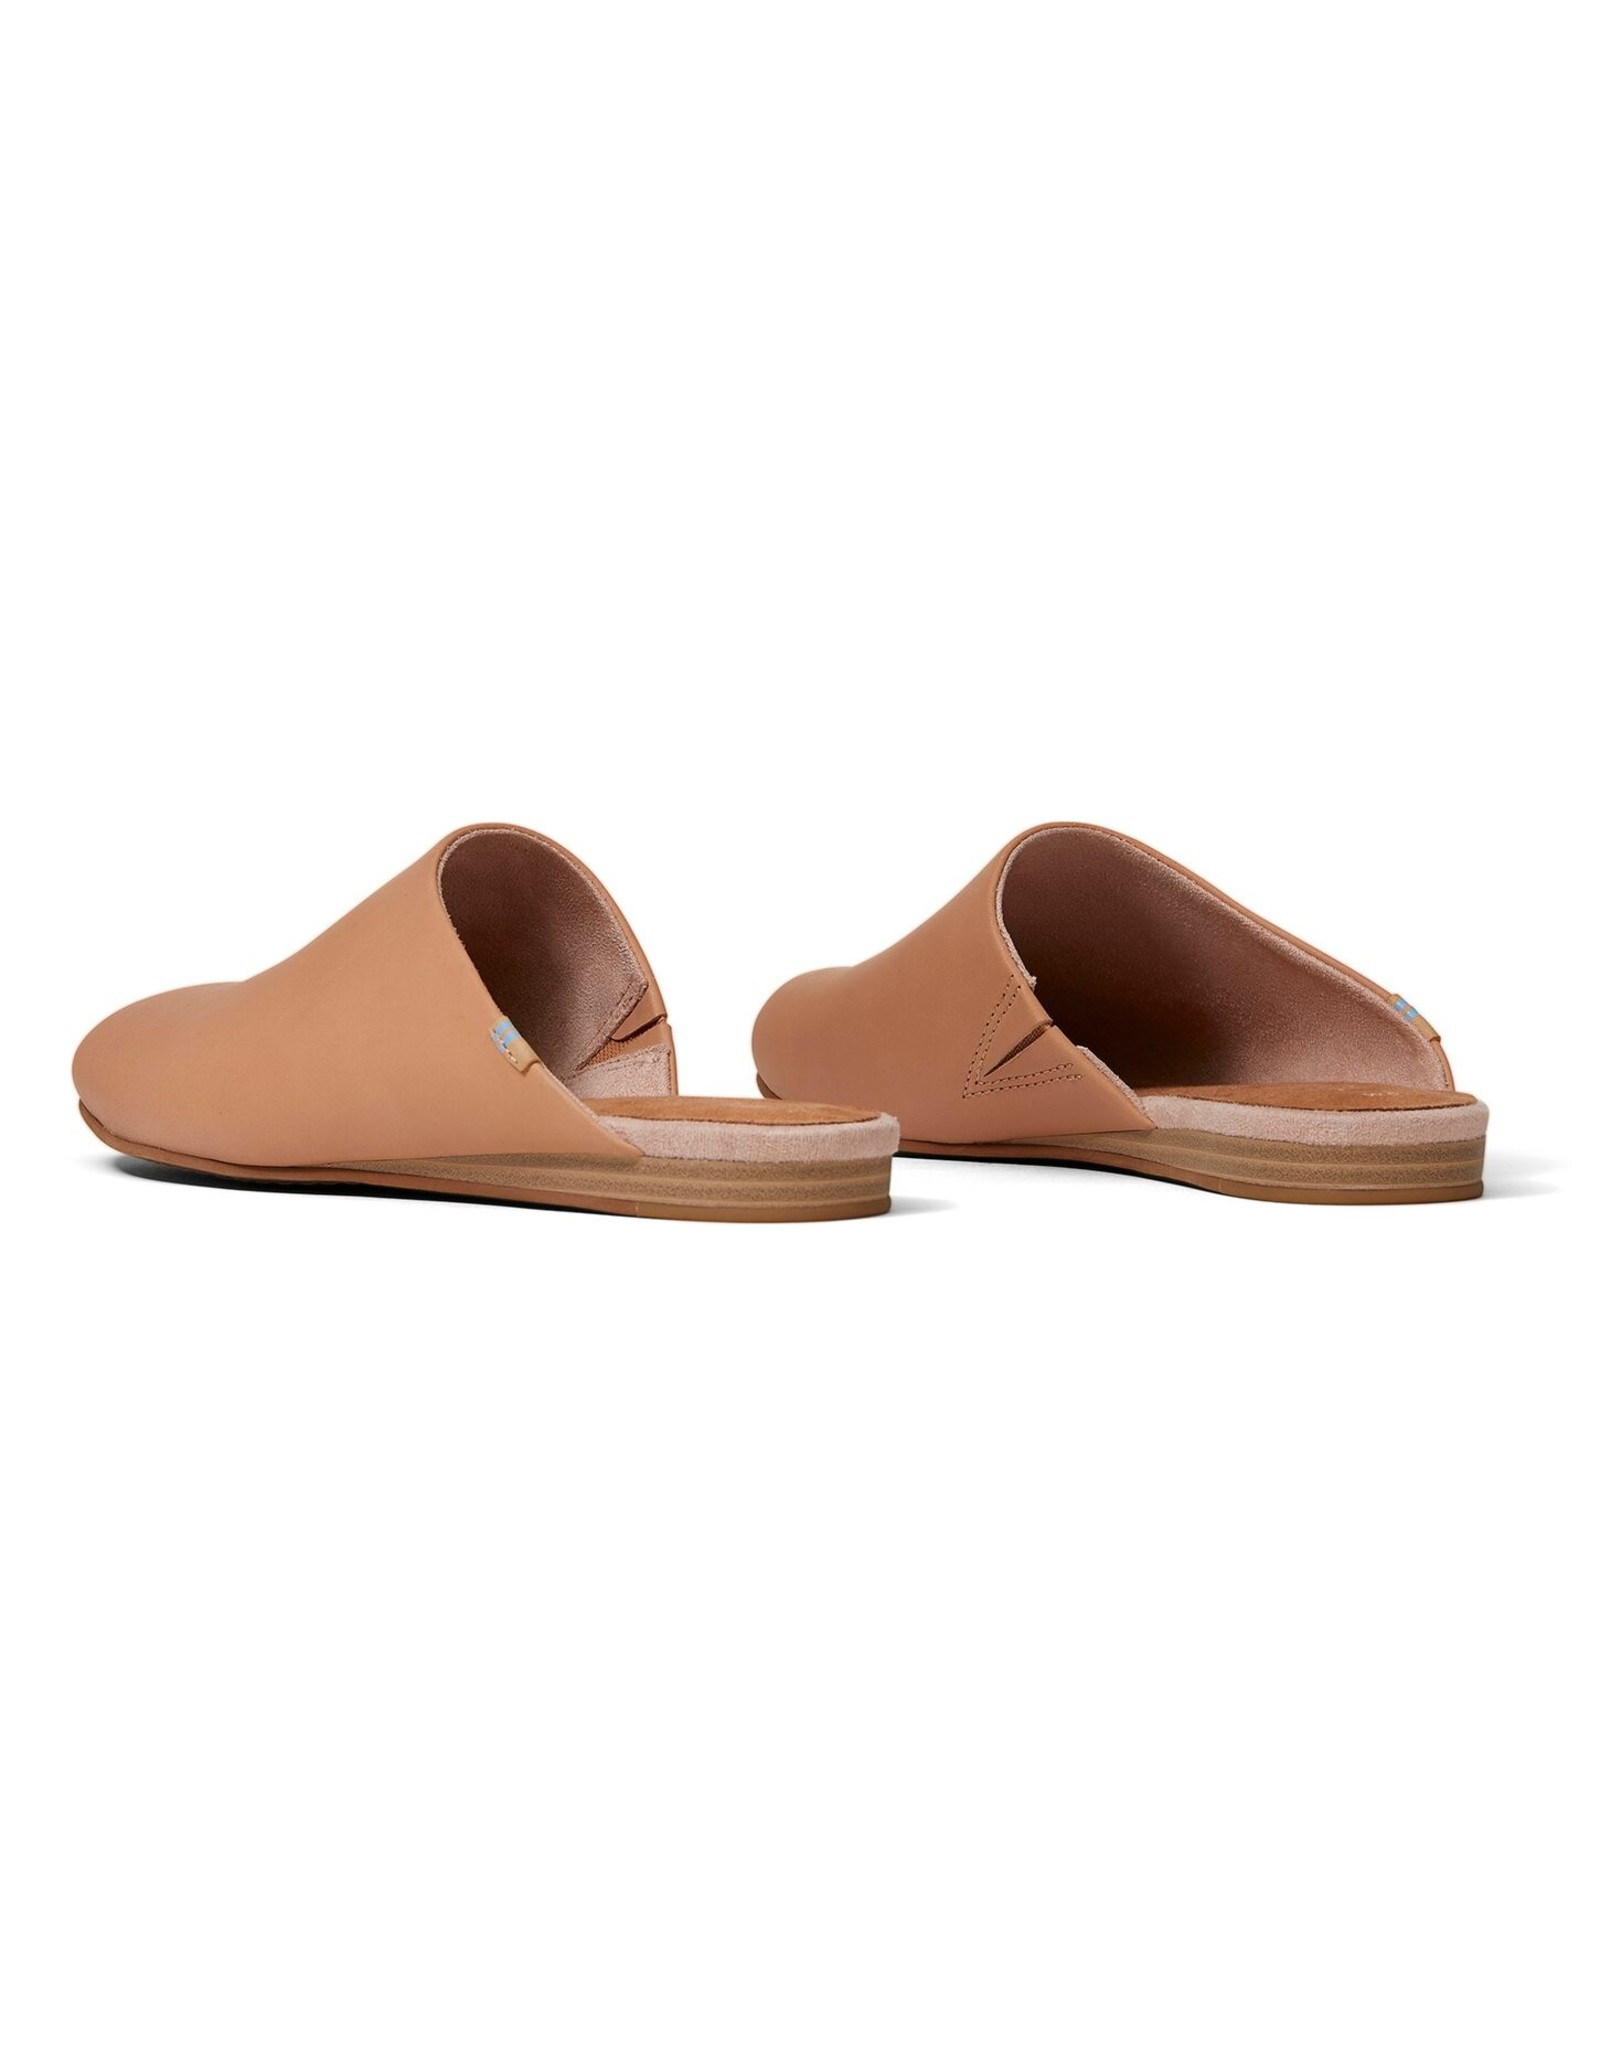 TOMS Women's Kelli Mule - 20ps